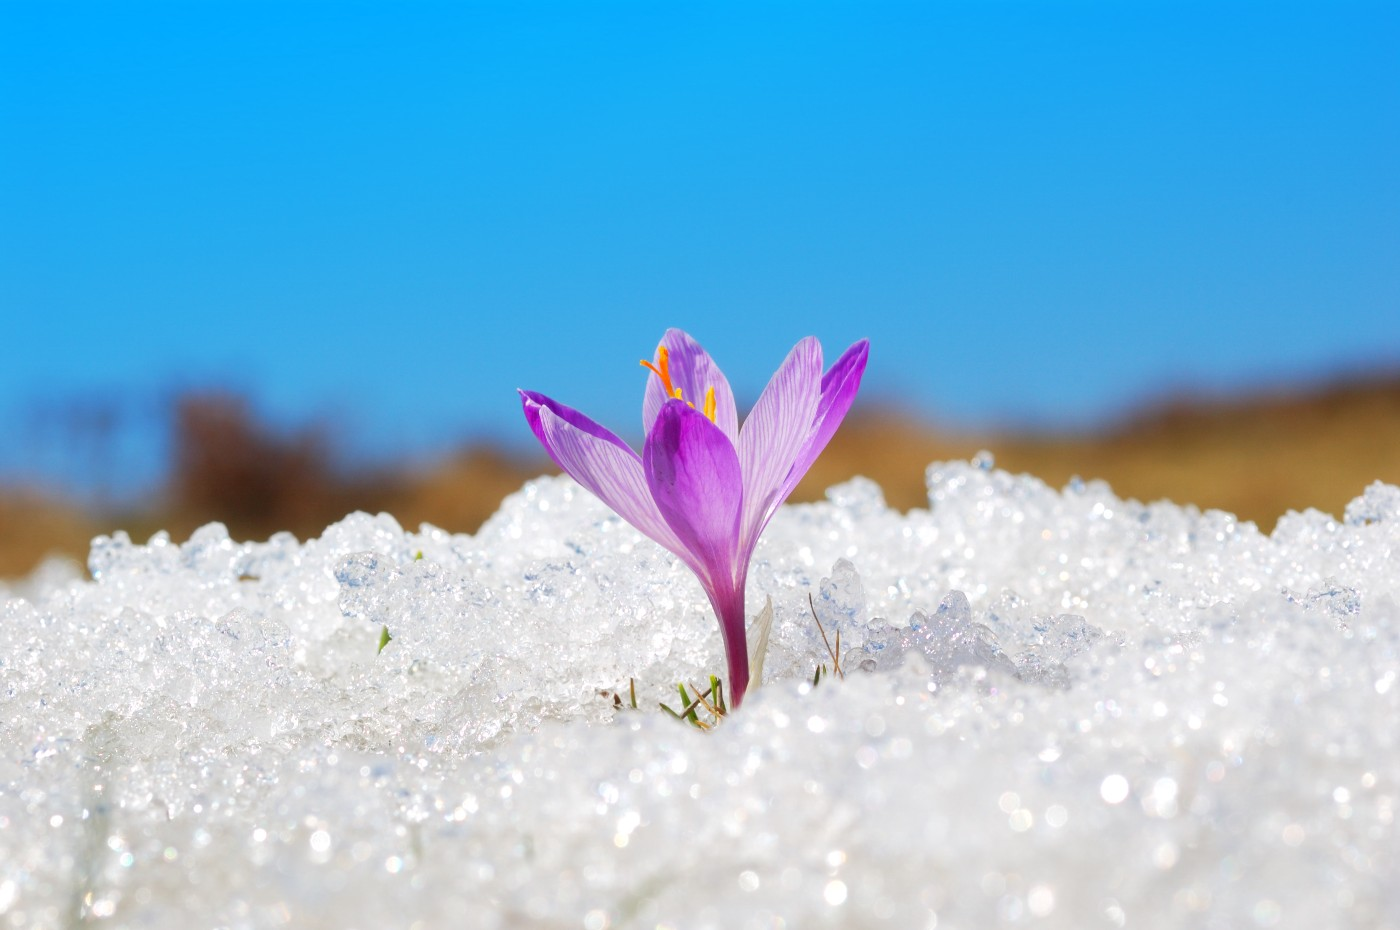 https://tickertapecdn.tdameritrade.com/assets/images/pages/md/Spring thaw: Growing financial literacy